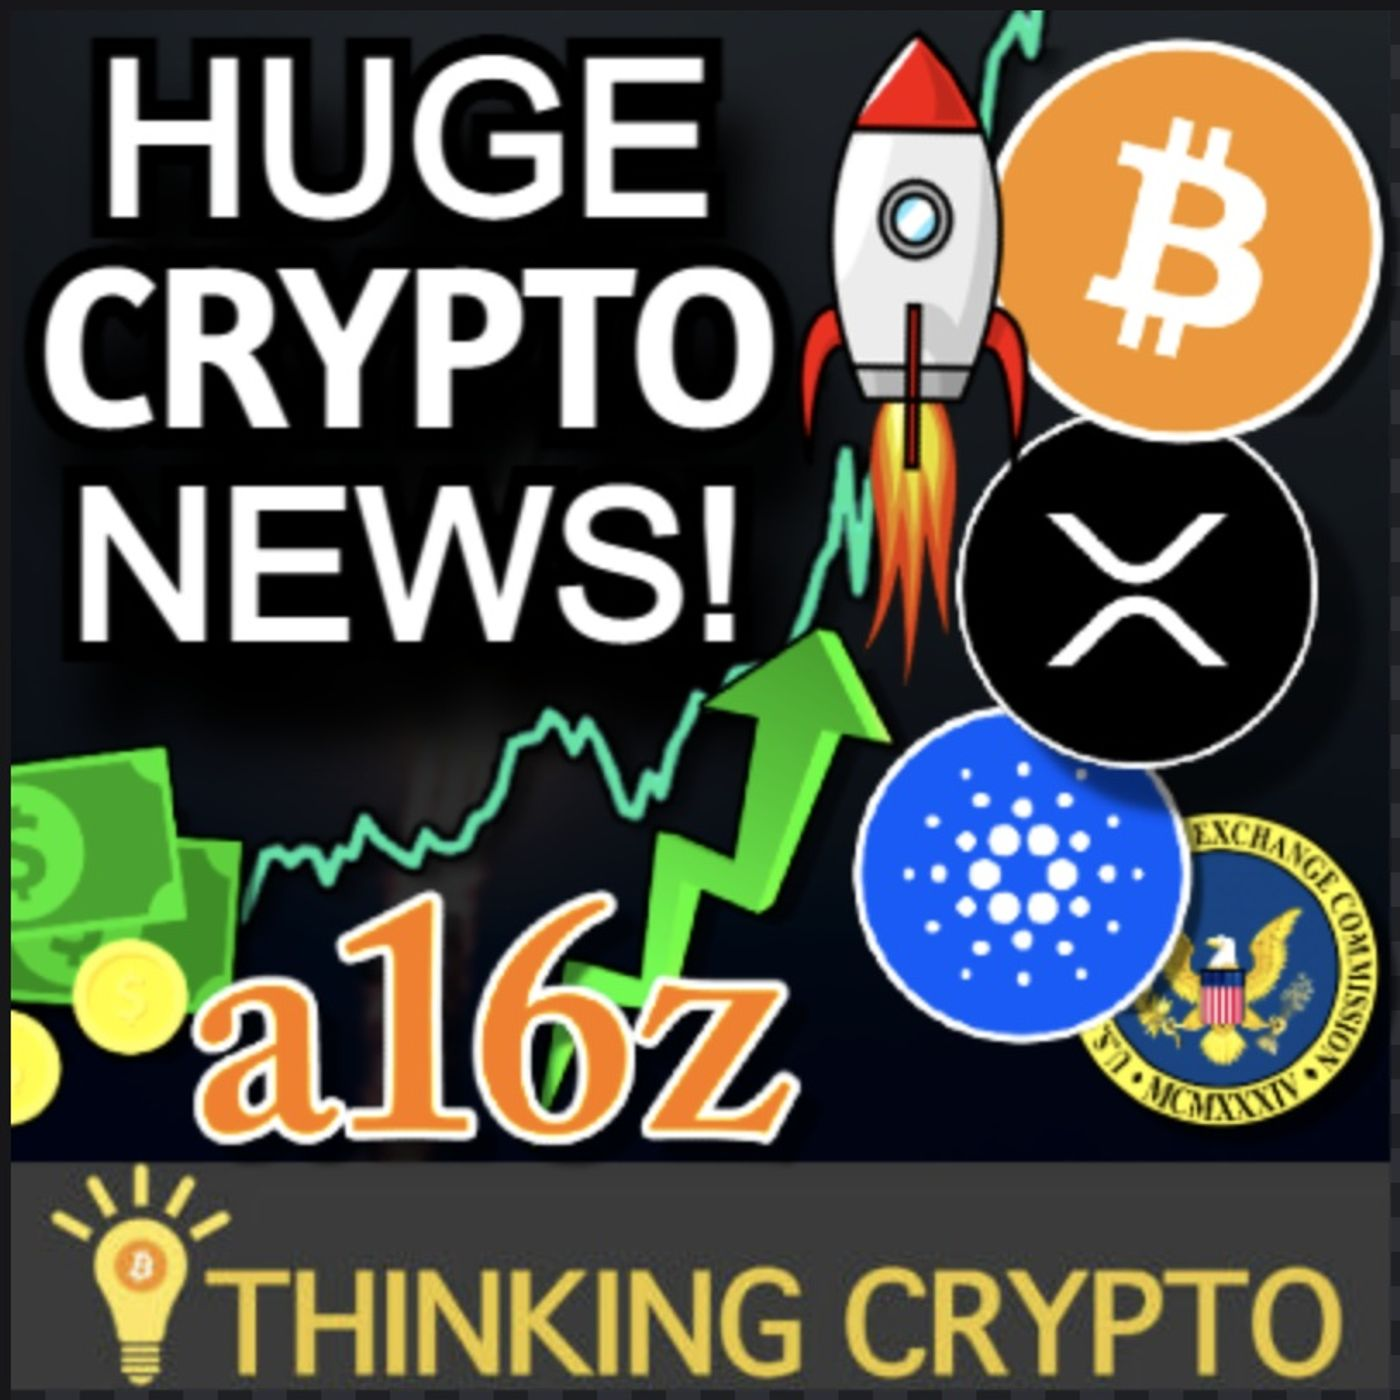 US Leads in BITCOIN Mining - a16z Crypto Regulations - SEC Ripple XRP News